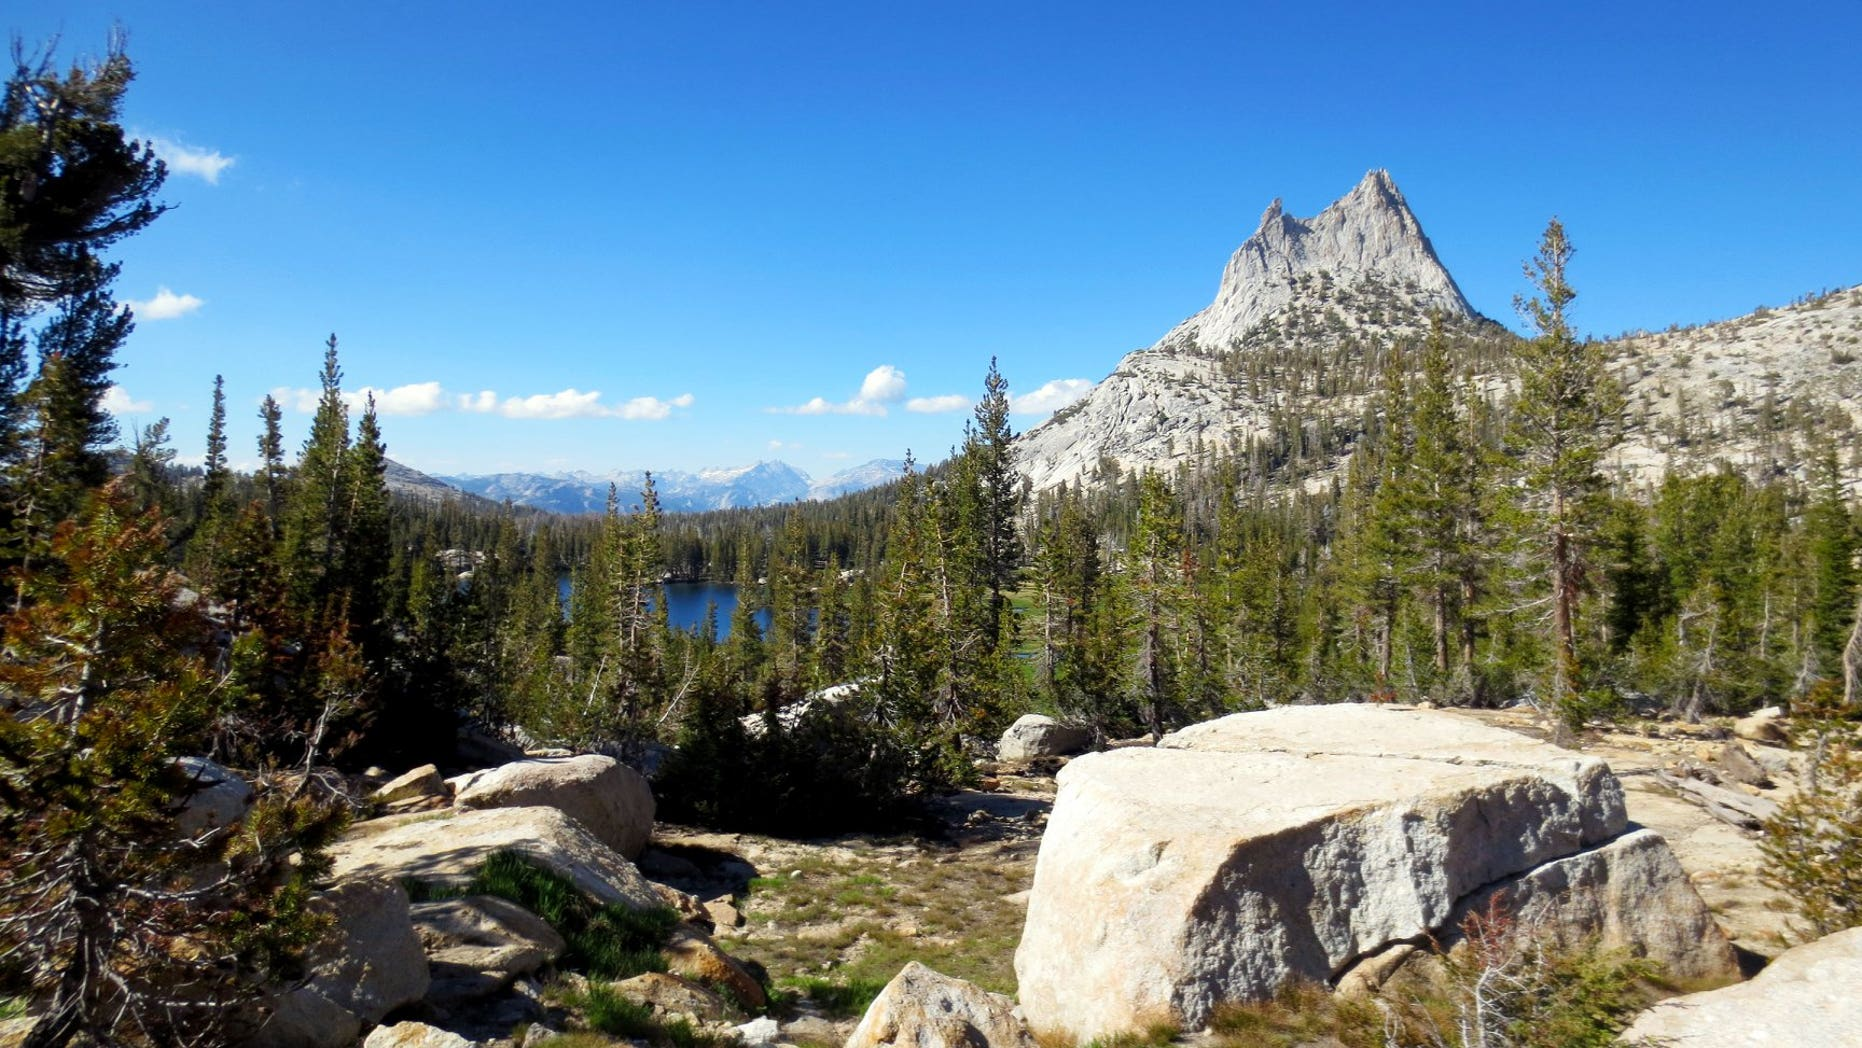 An 18-year-old died Wednesday after falling off a cliff in Yosemite National Park.